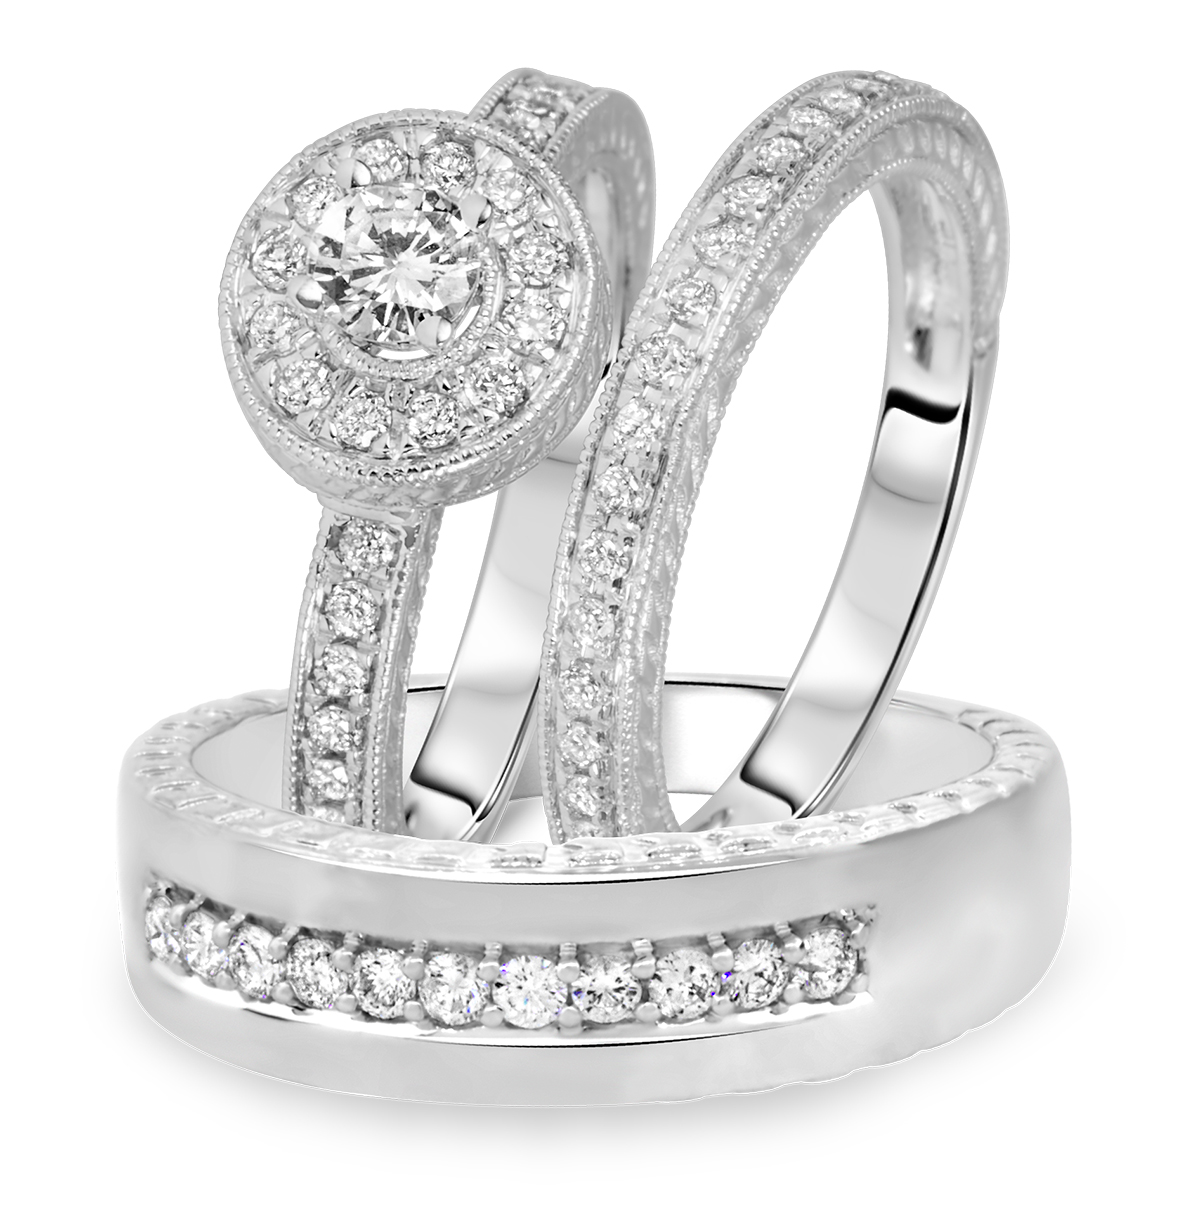 1 Carat T.W. Round Cut Diamond Matching Trio Wedding Ring Set 14K White Gold